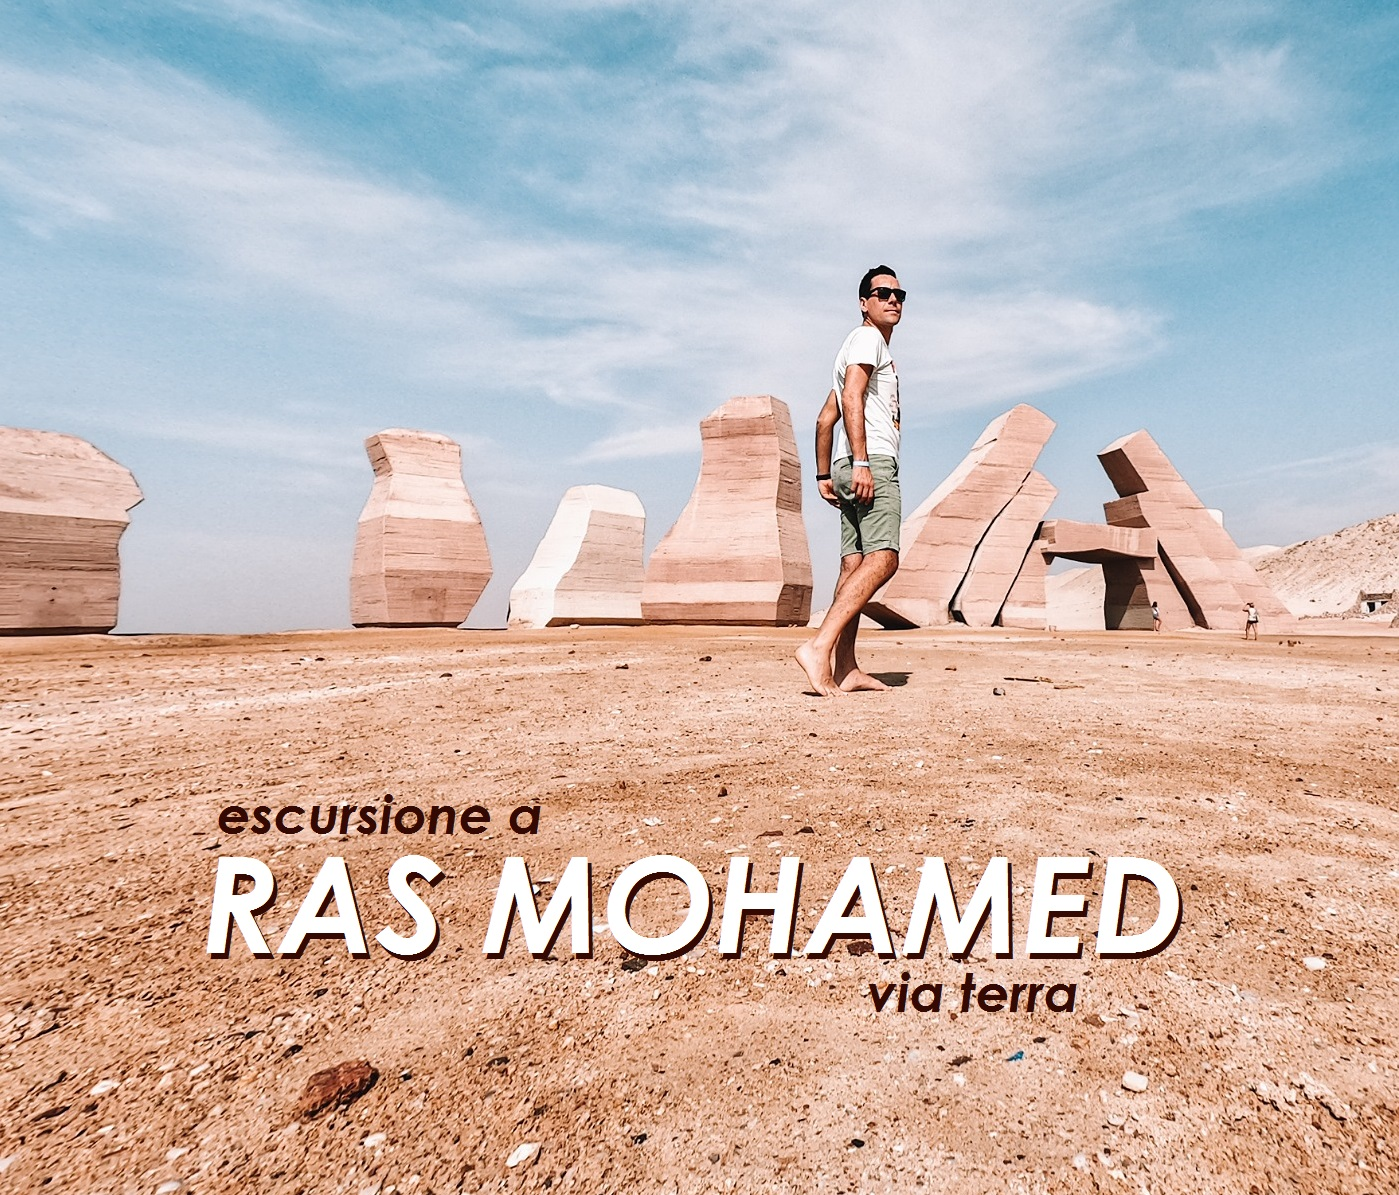 escursione a ras mohamed via terra sharm